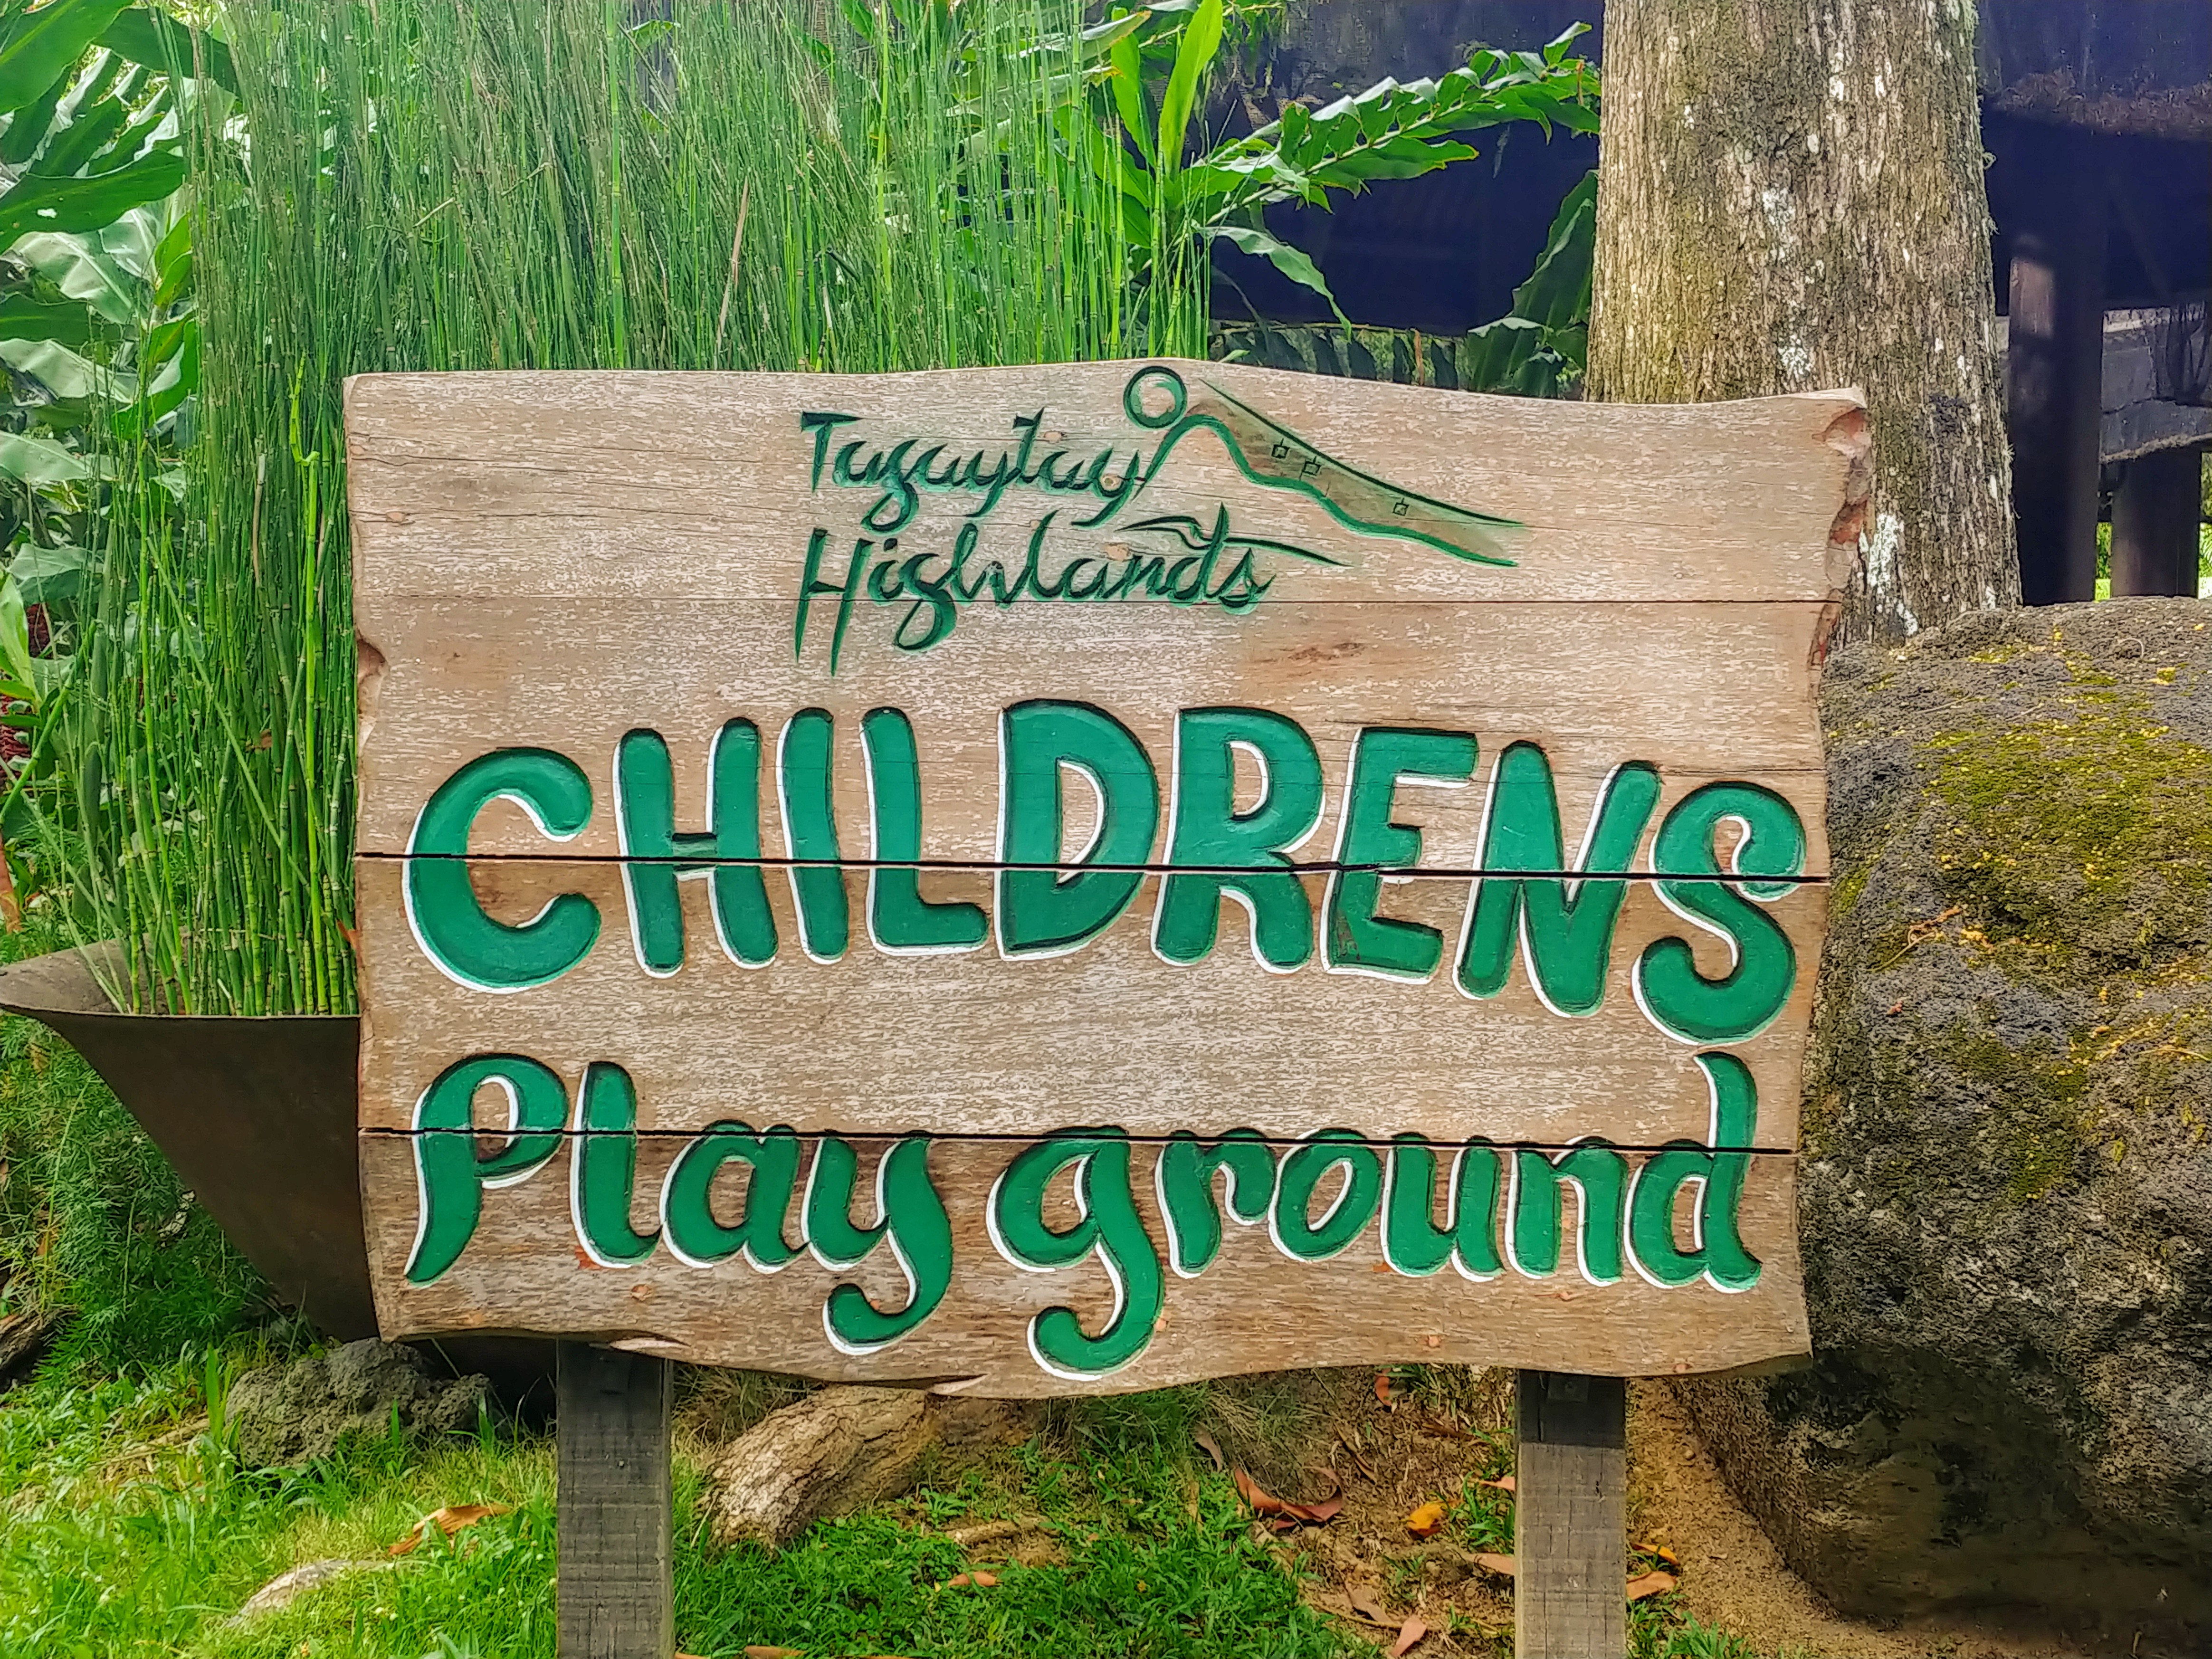 Childrens Playground Tagaytay Highlands on House & Home Philippines